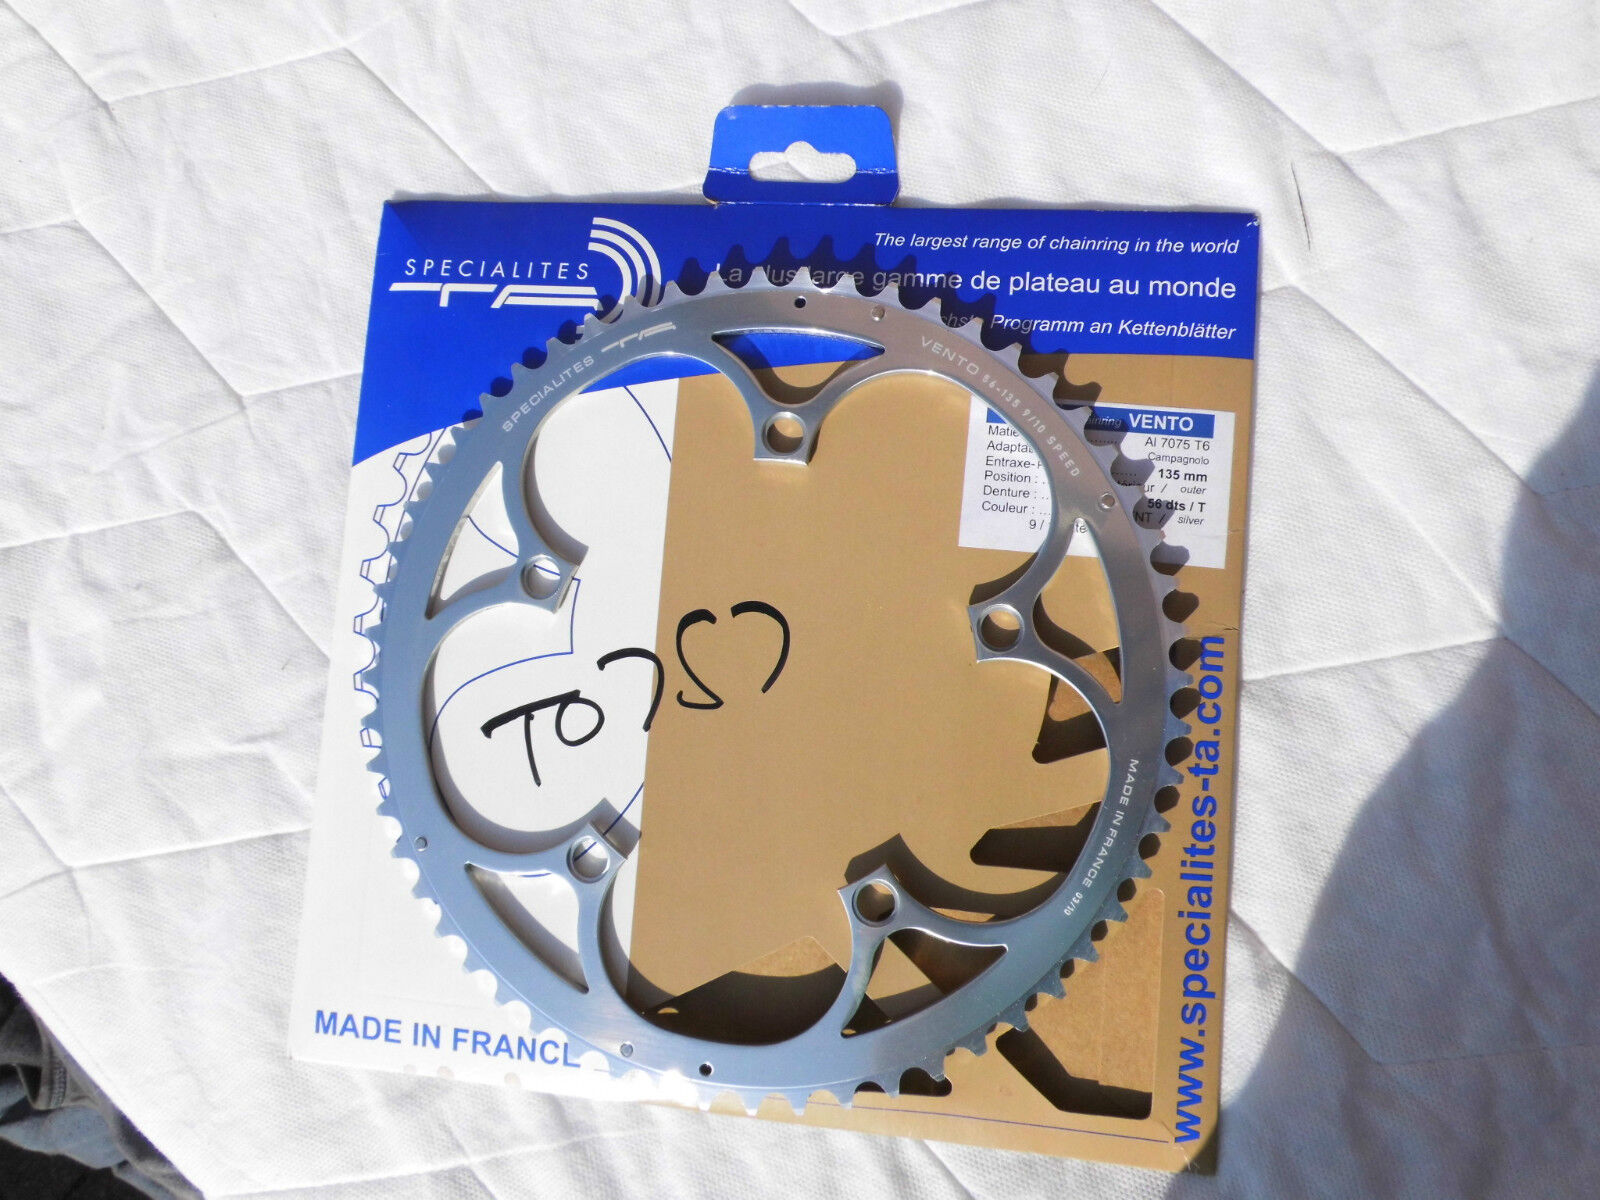 NEW TA specialities VENTO chainring 56t 135mm 8 9 10 speed 7075 (zicral) alloy